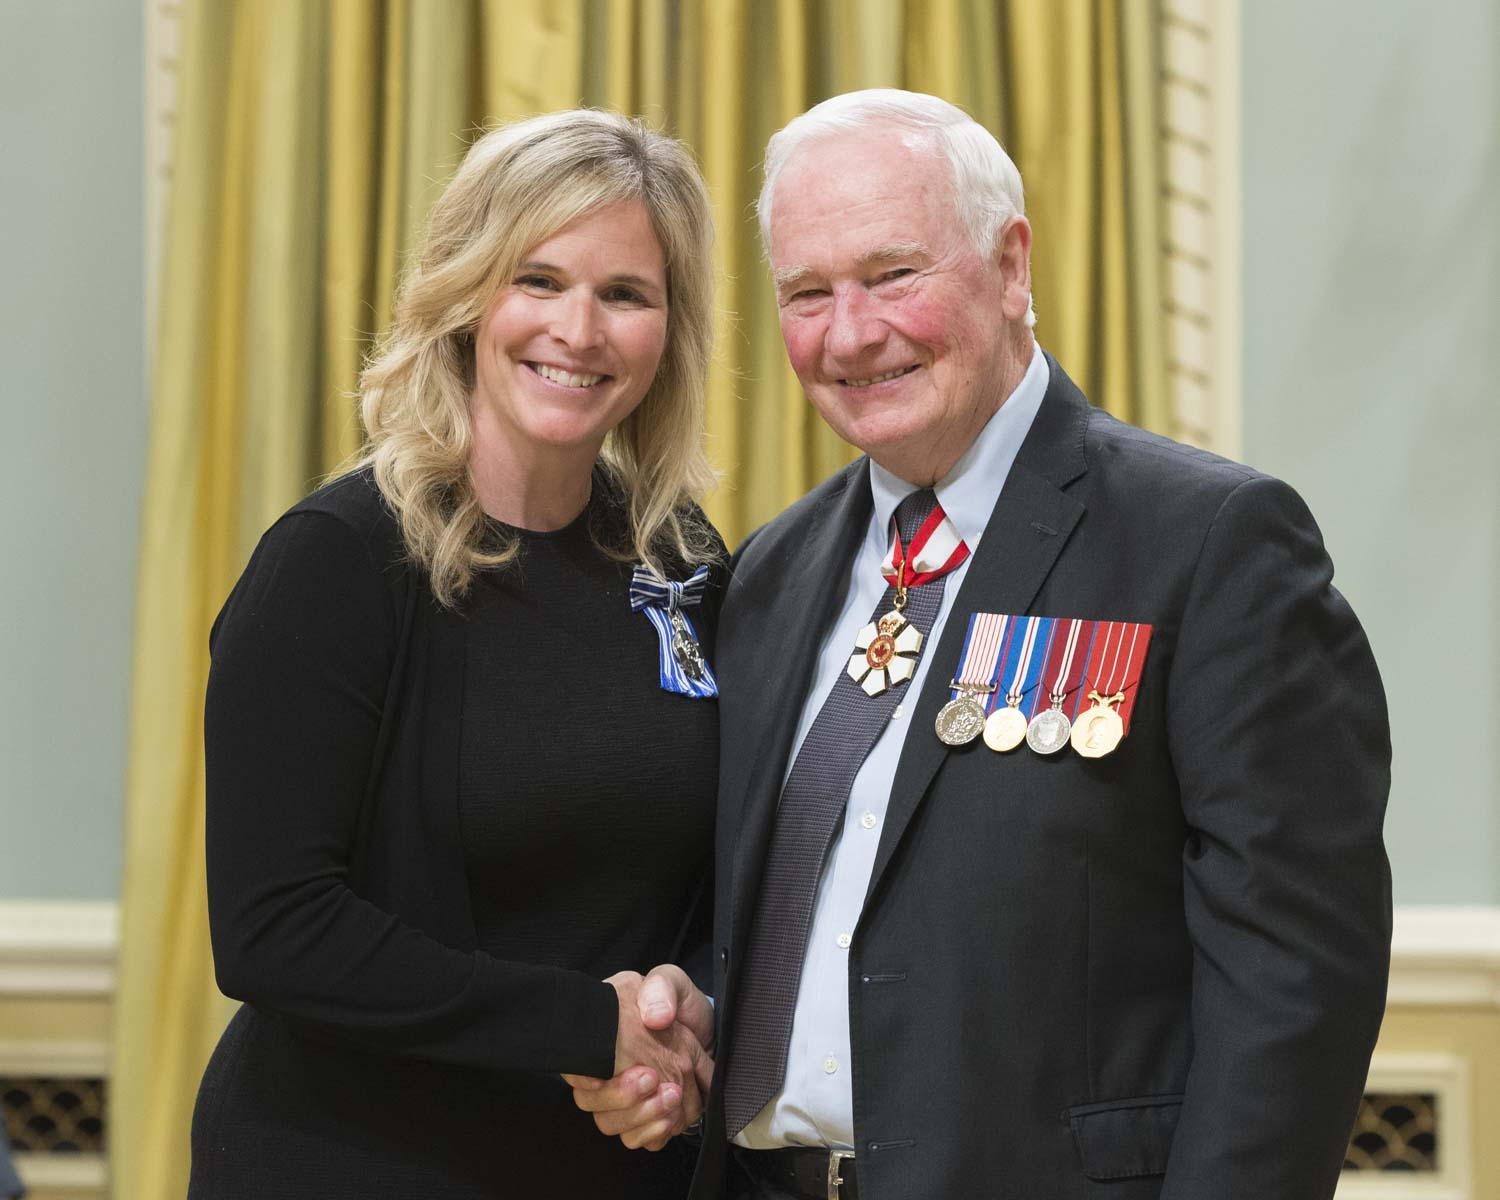 His Excellency presented the Meritorious Service Medal to Jennifer Jones. Jennifer Jones is one of Canada's top curlers. She has dominated the sport at every level, and was the first-ever skip in Olympic history to go undefeated on her way to earning a gold medal. Renowned for her positivity on and off the sheet, she is also a lawyer, as well as a proud Manitoban and mother. She combines grace with competitive spirit, and is a role model not only for aspiring athletes, but for all Canadians.